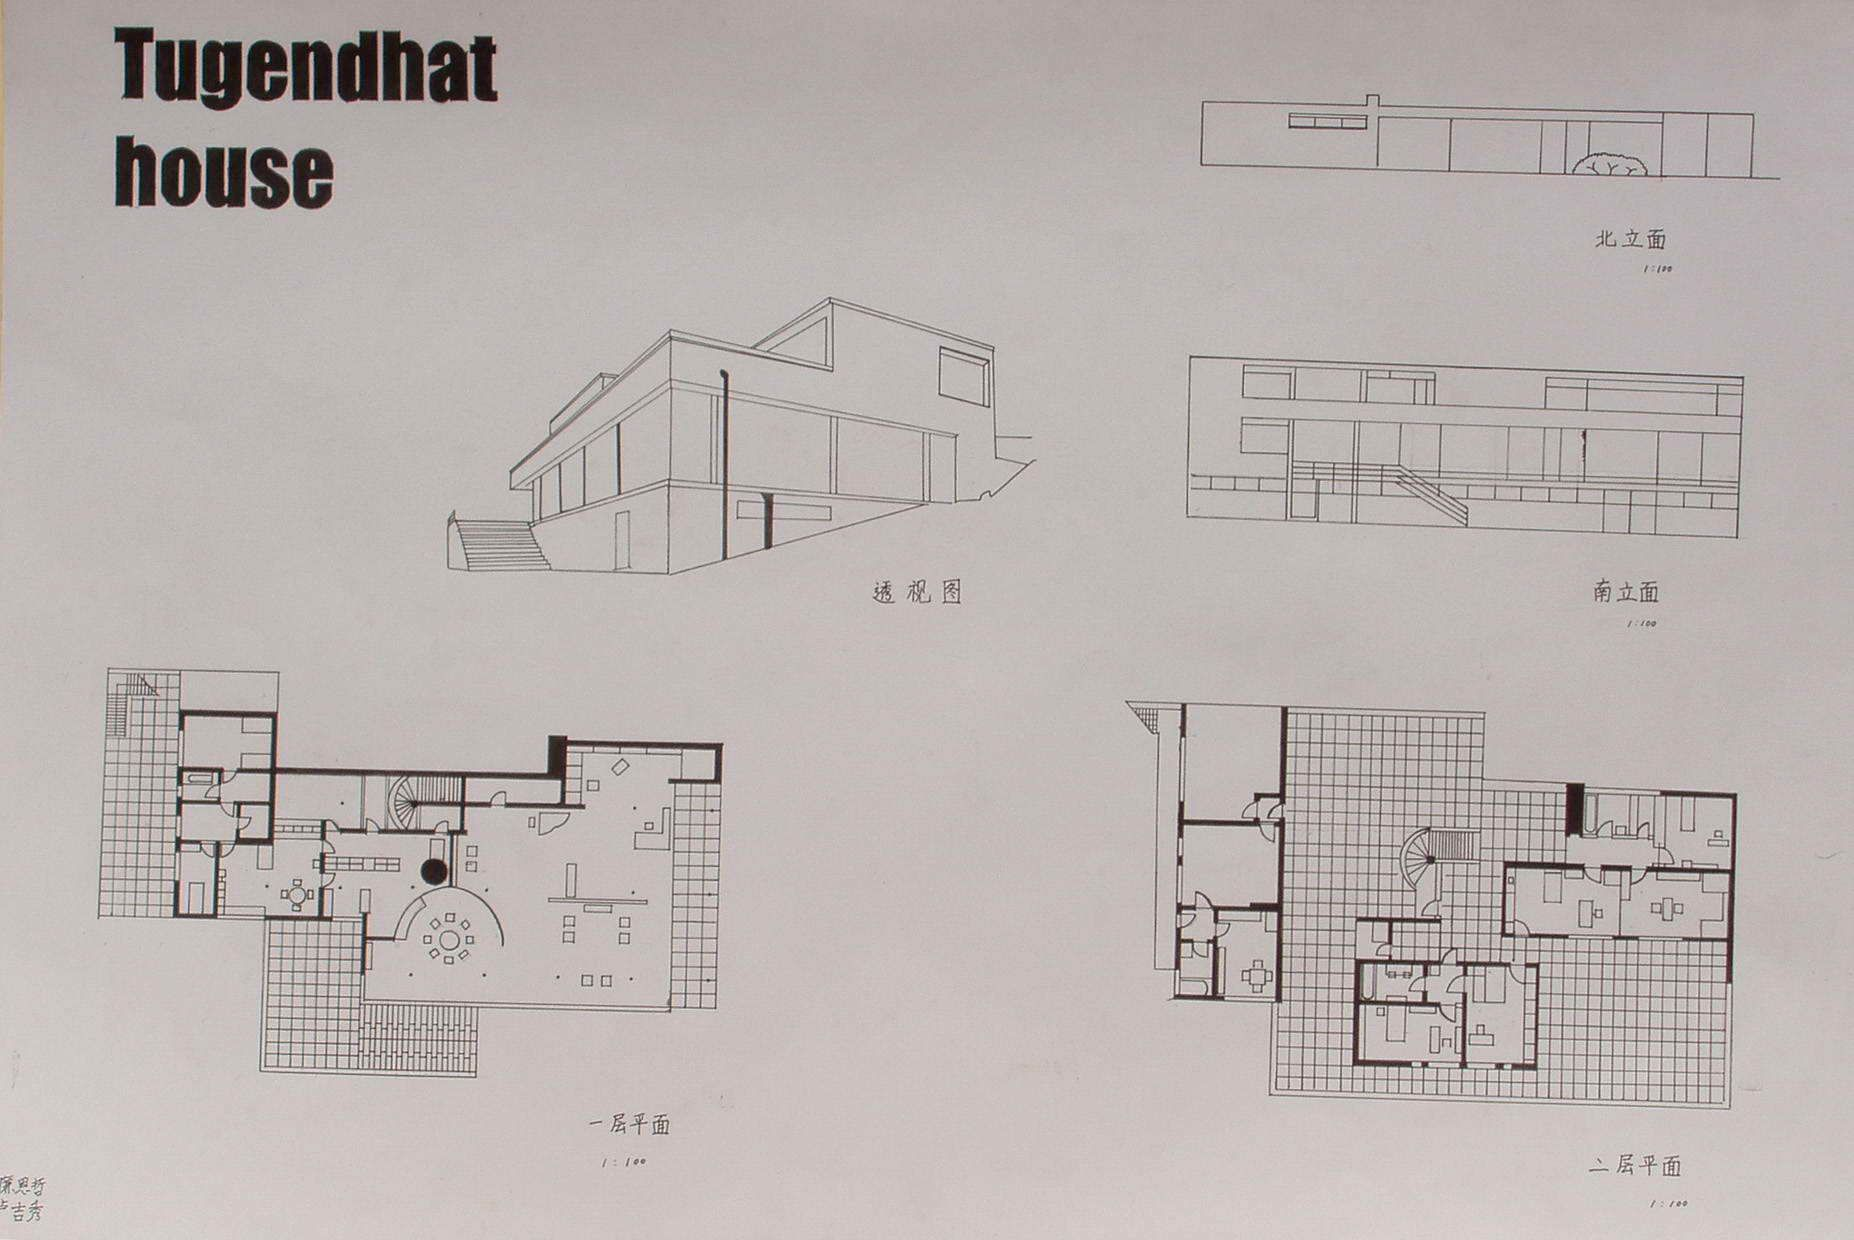 Plan Elevation Perspective : Plans elevations and perspective view of the tugendhat